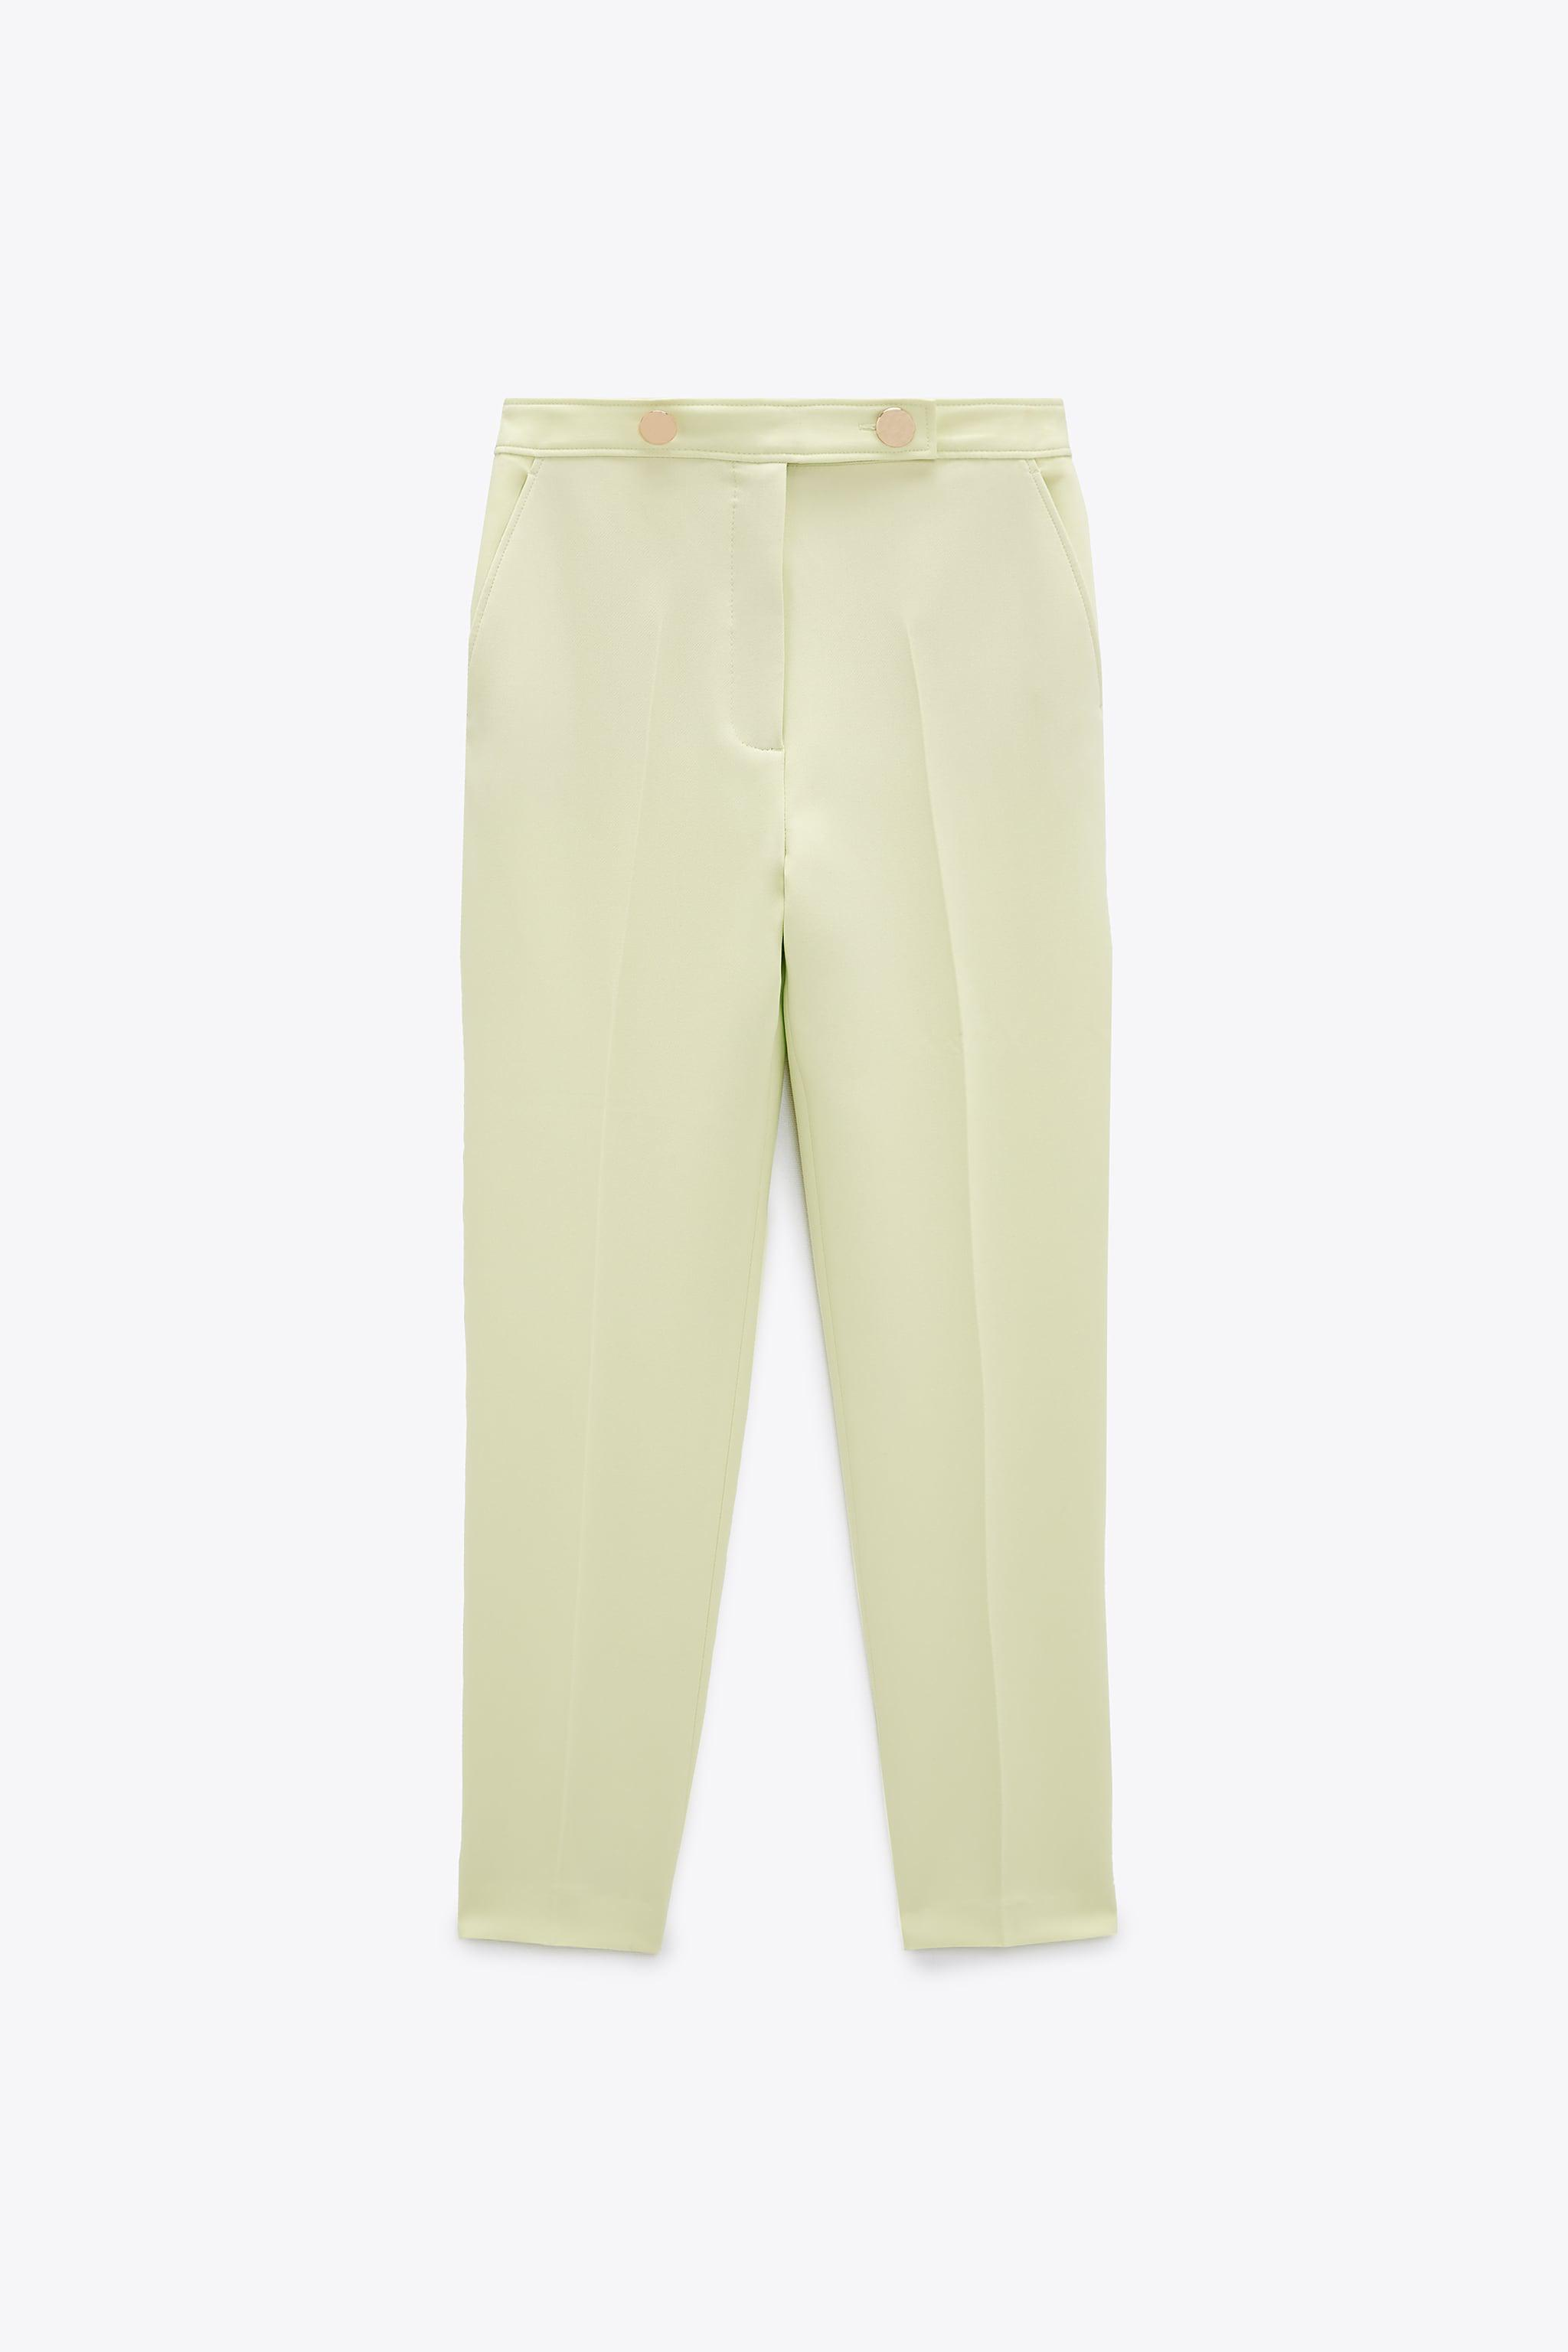 BUTTONED PANTS WITH BELT 4